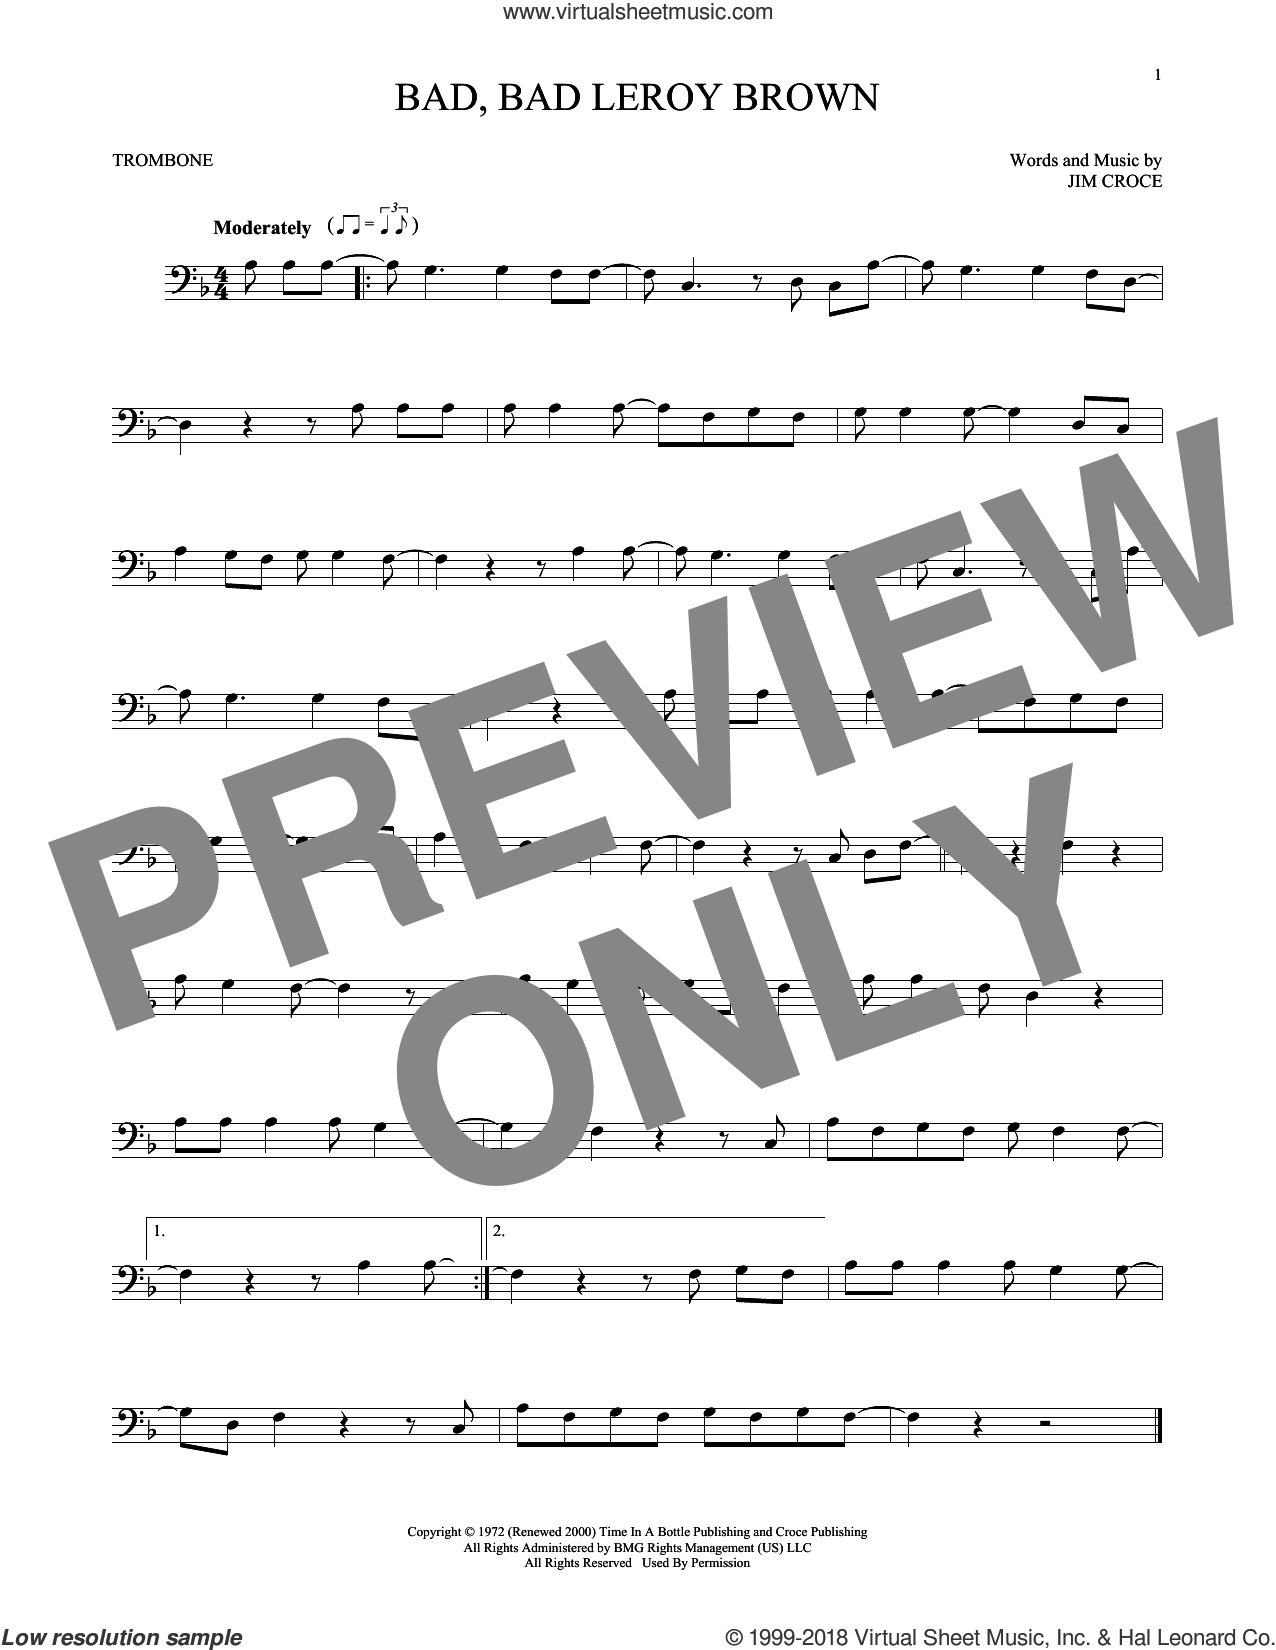 Bad, Bad Leroy Brown sheet music for trombone solo by Jim Croce, intermediate skill level